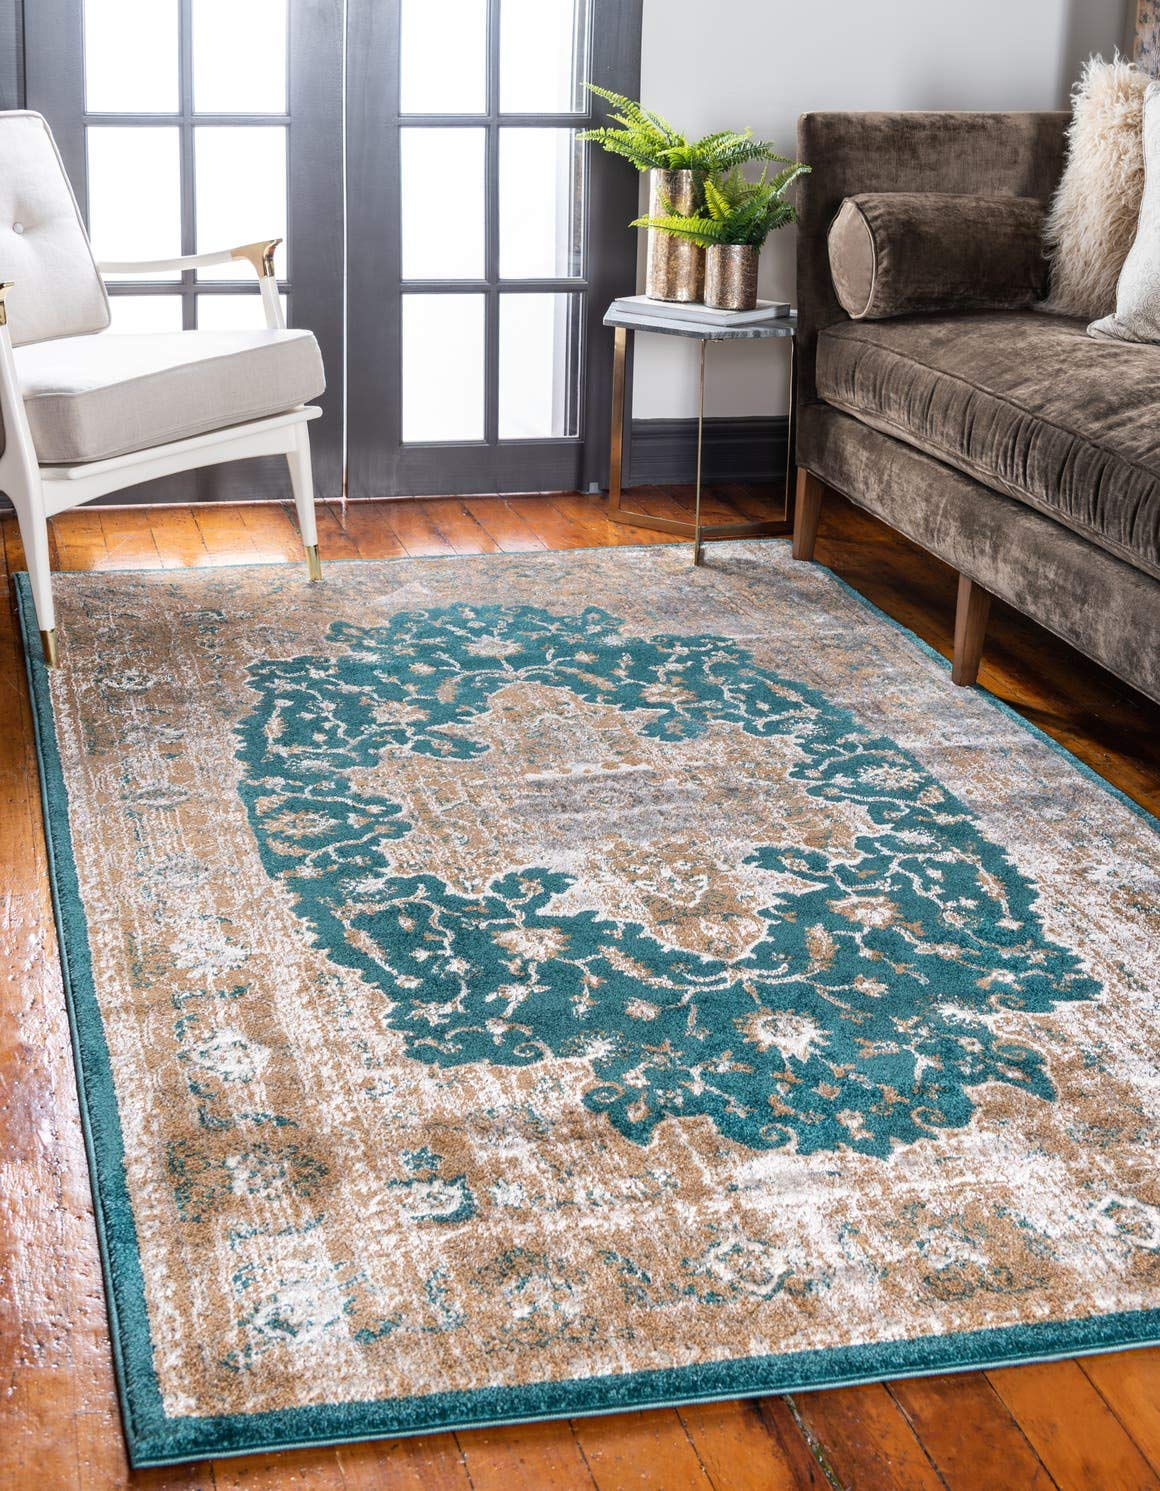 Unique Loom Aurora Collection Vintage Medallion Traditional Border Teal Area Rug 5 0 x 8 0